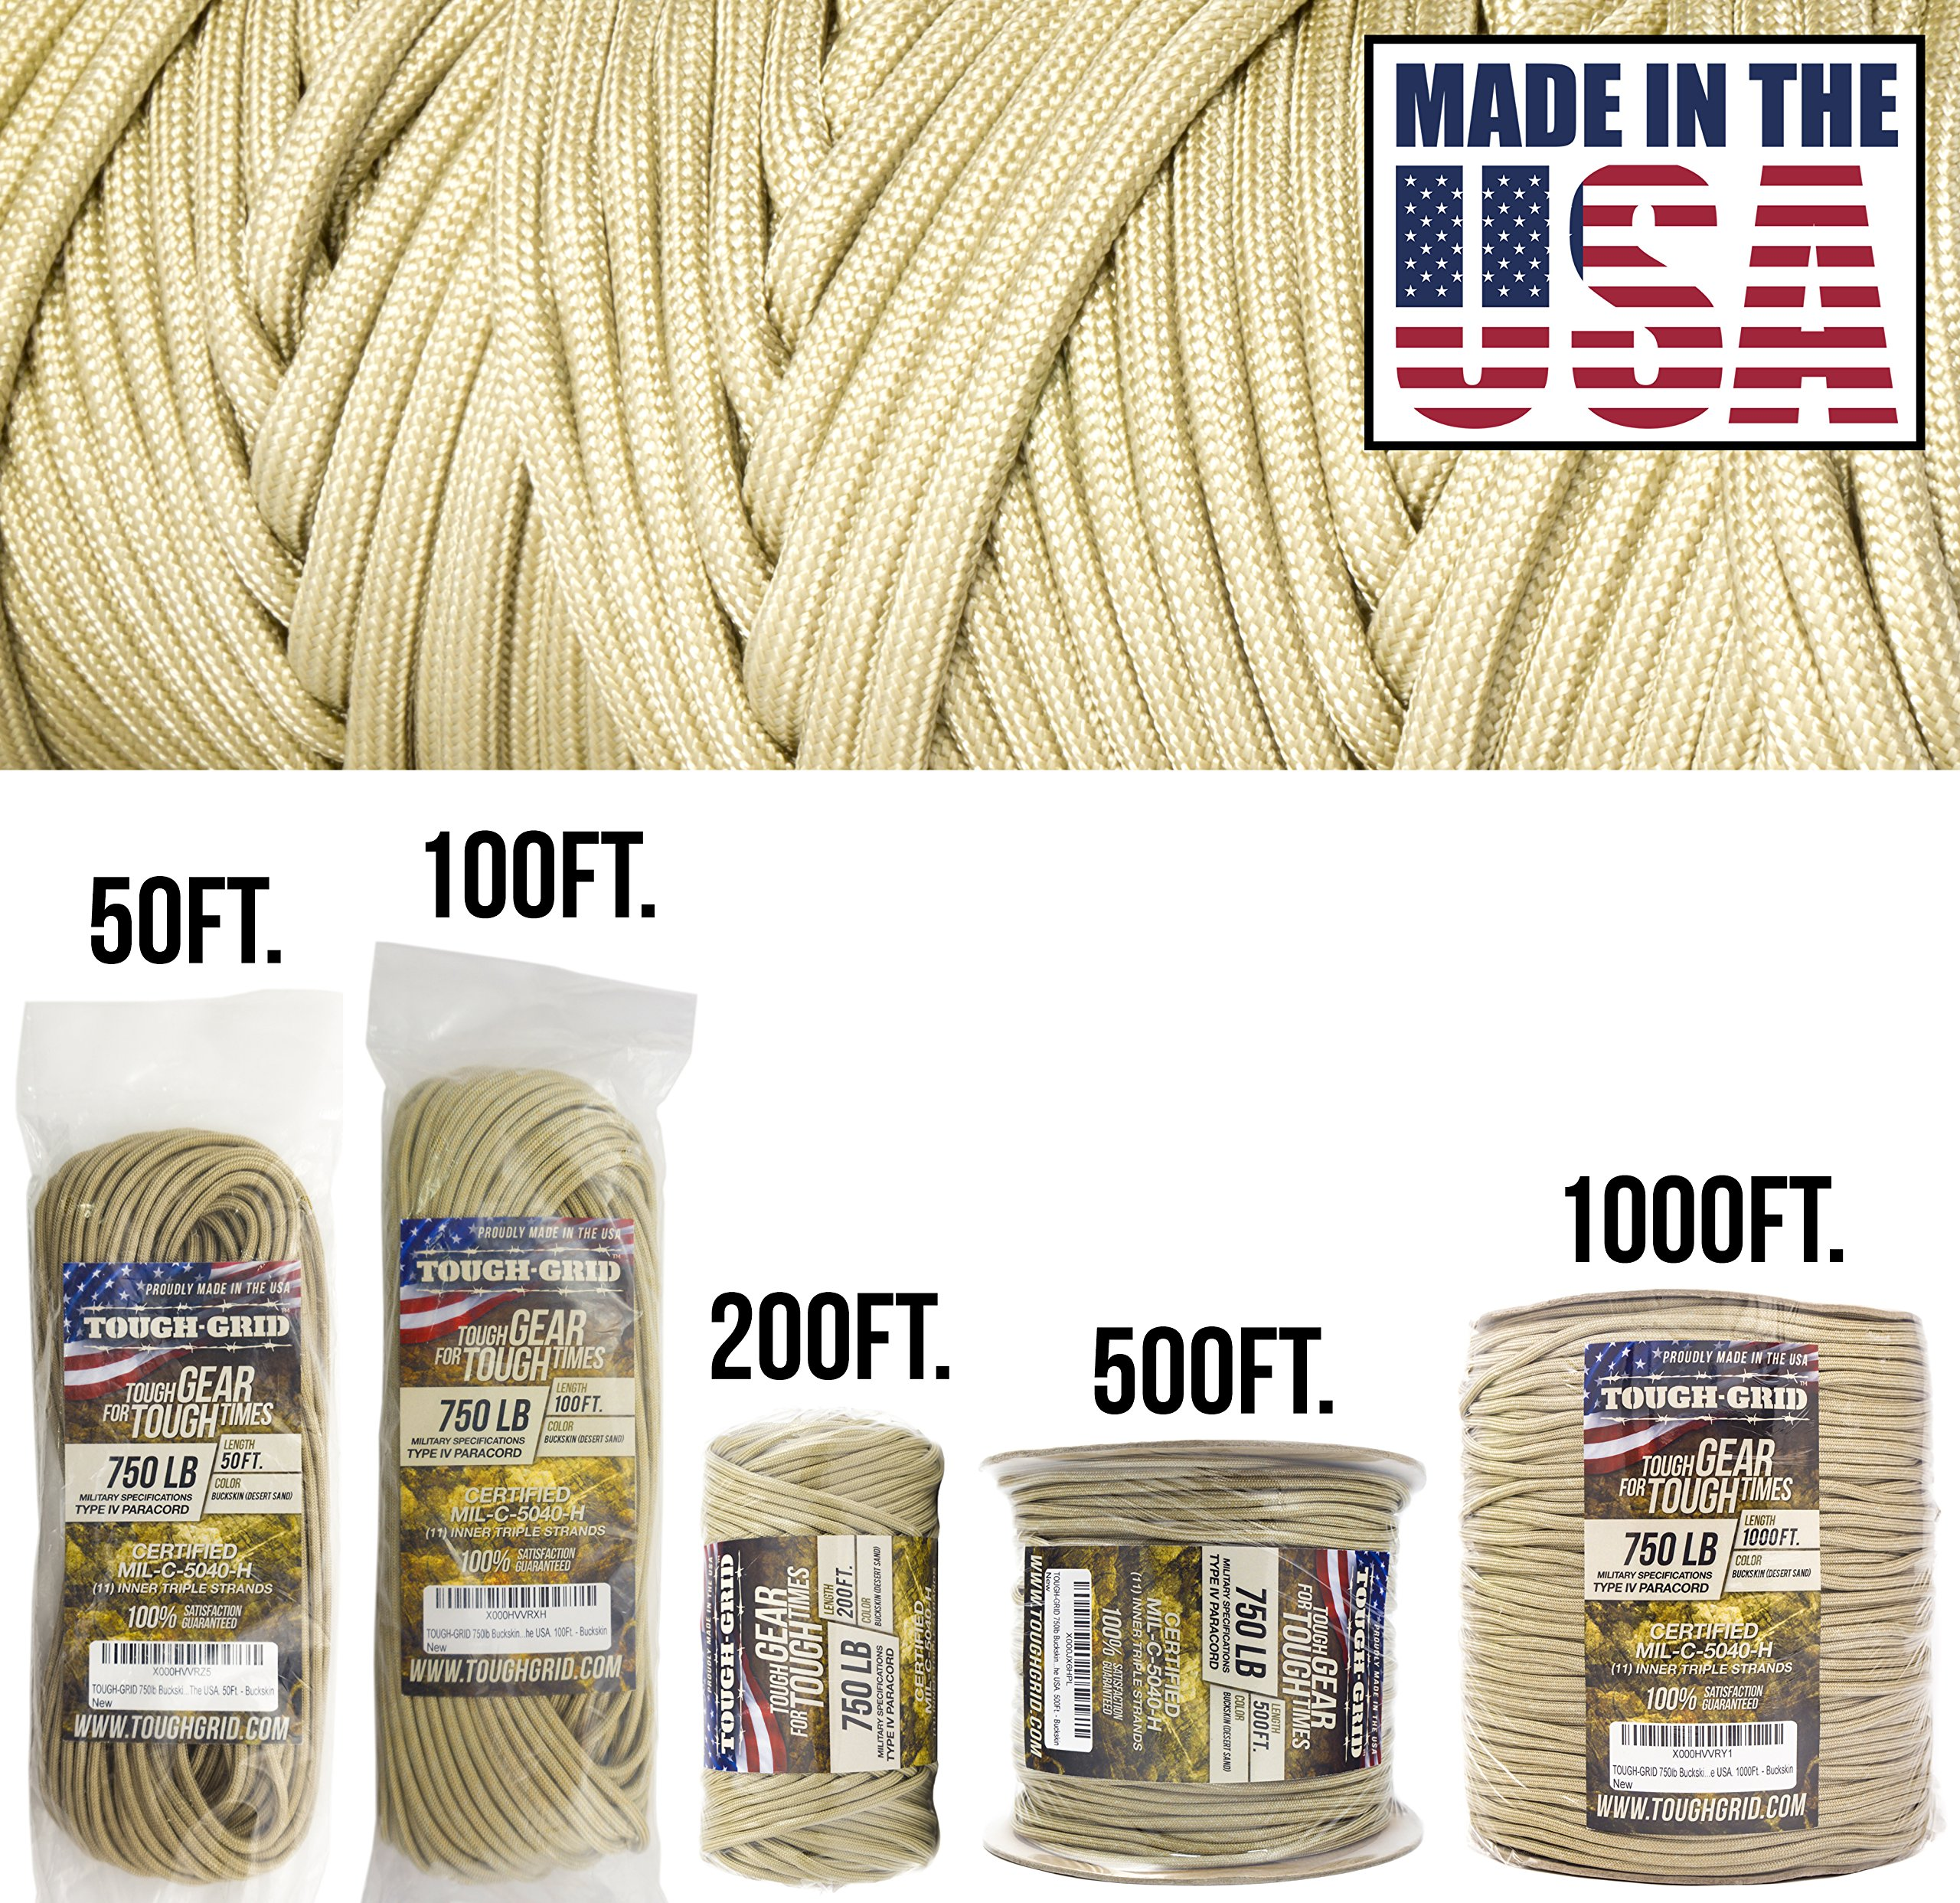 TOUGH-GRID 750lb Buckskin (Desert Sand) Paracord/Parachute Cord - Genuine Mil Spec Type IV 750lb Paracord Used by The US Military (MIl-C-5040-H) - 100% Nylon - Made in The USA. 500Ft. - Buckskin by TOUGH-GRID (Image #1)